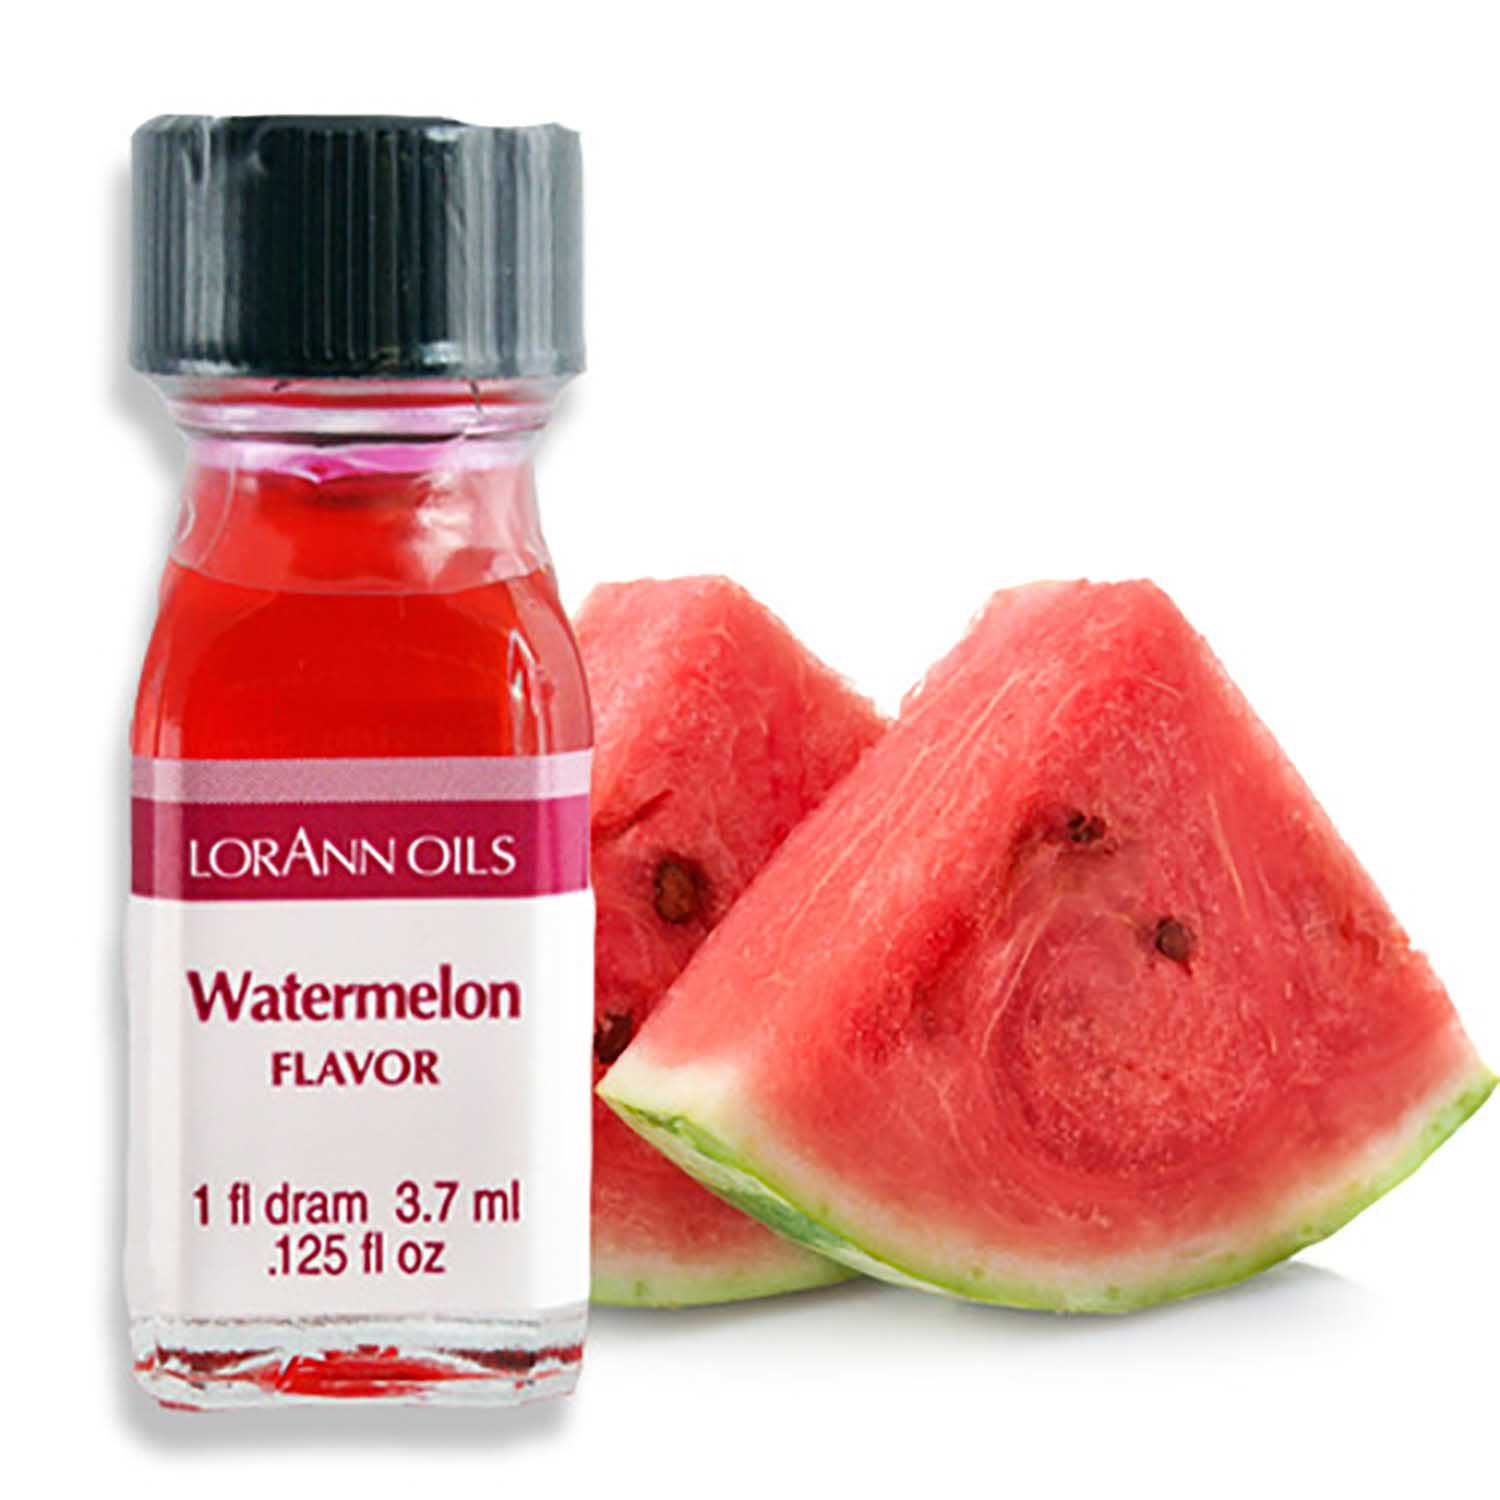 Watermelon LorAnn Super-Strength Flavor